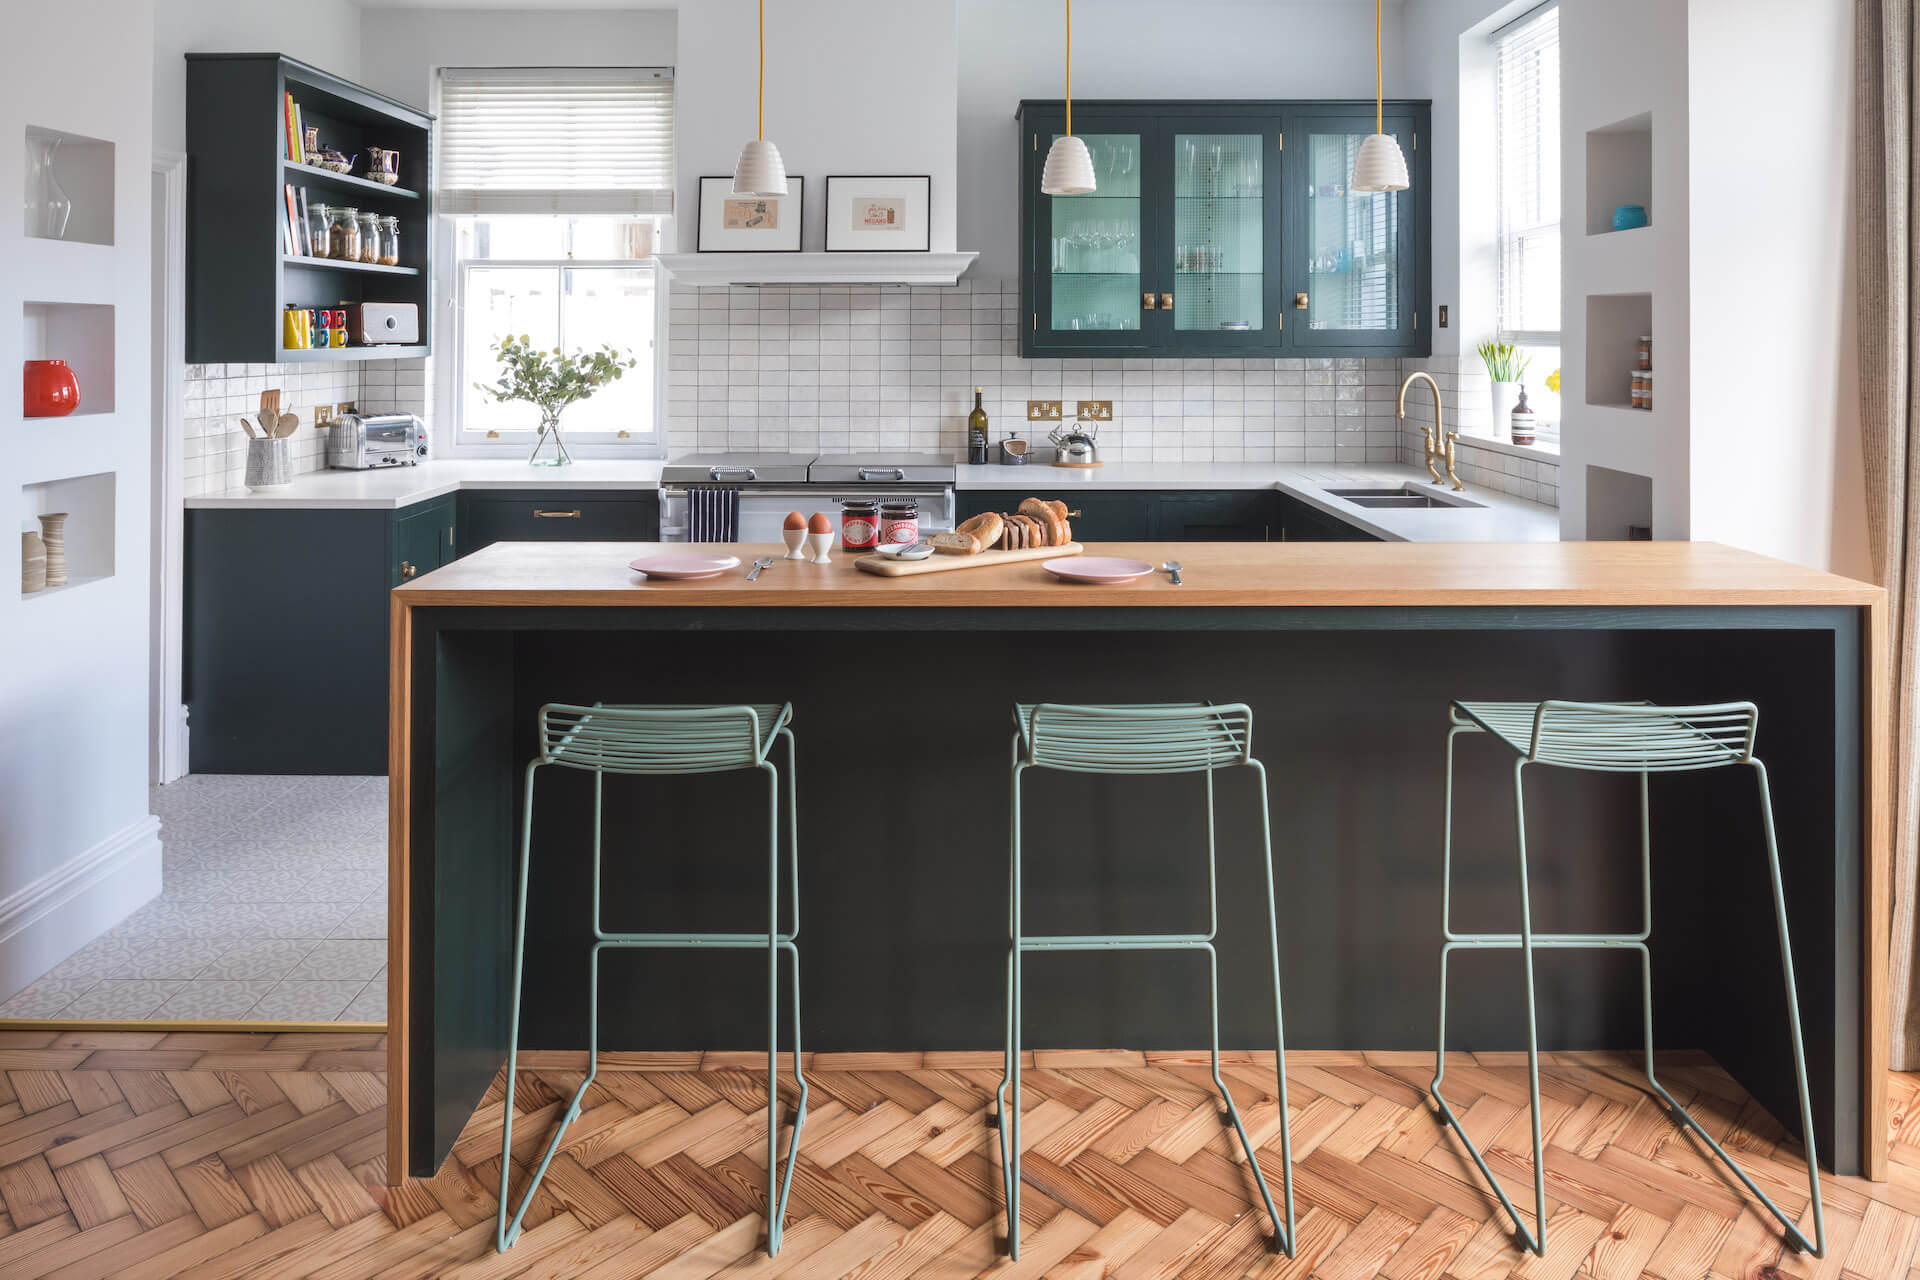 The Cardiff Green Shaker Kitchen with parquet flooring